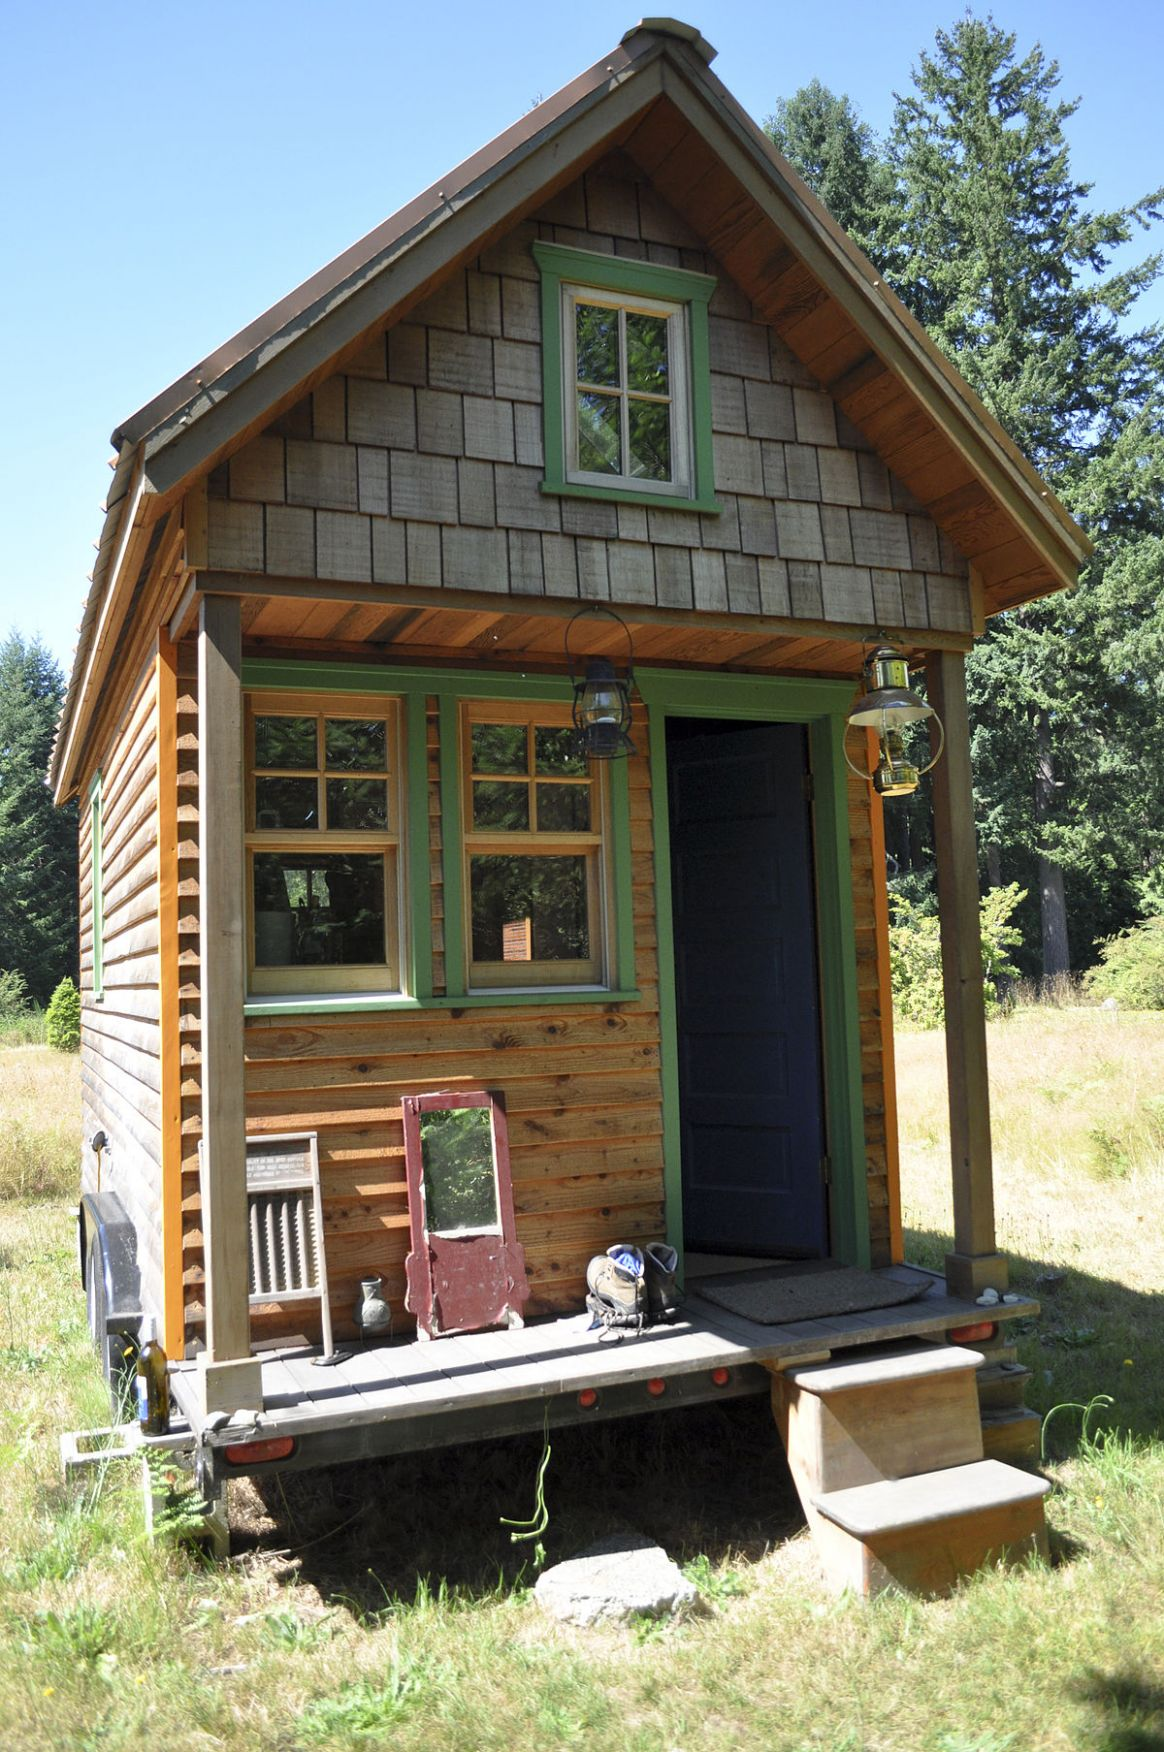 Tiny house movement - Wikipedia